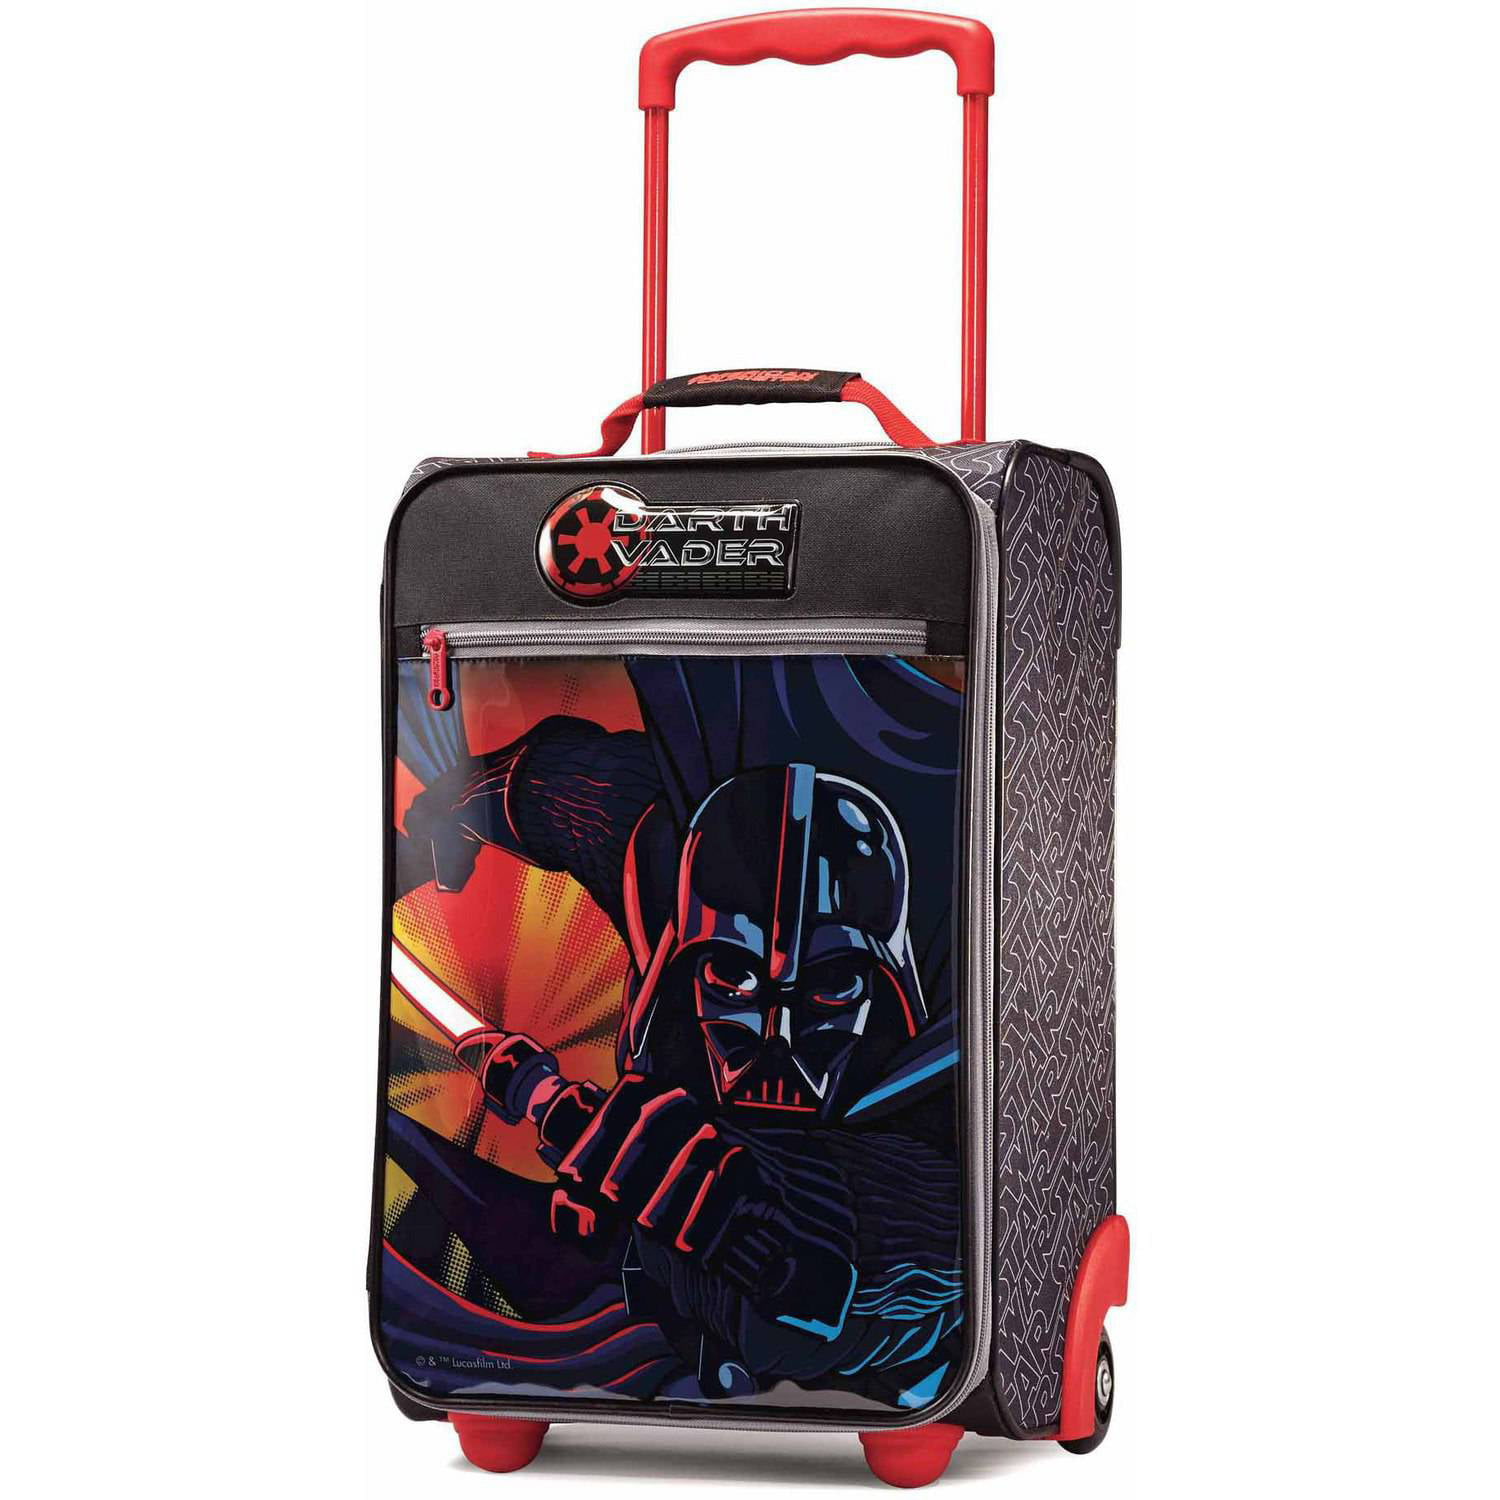 Kids' Luggage